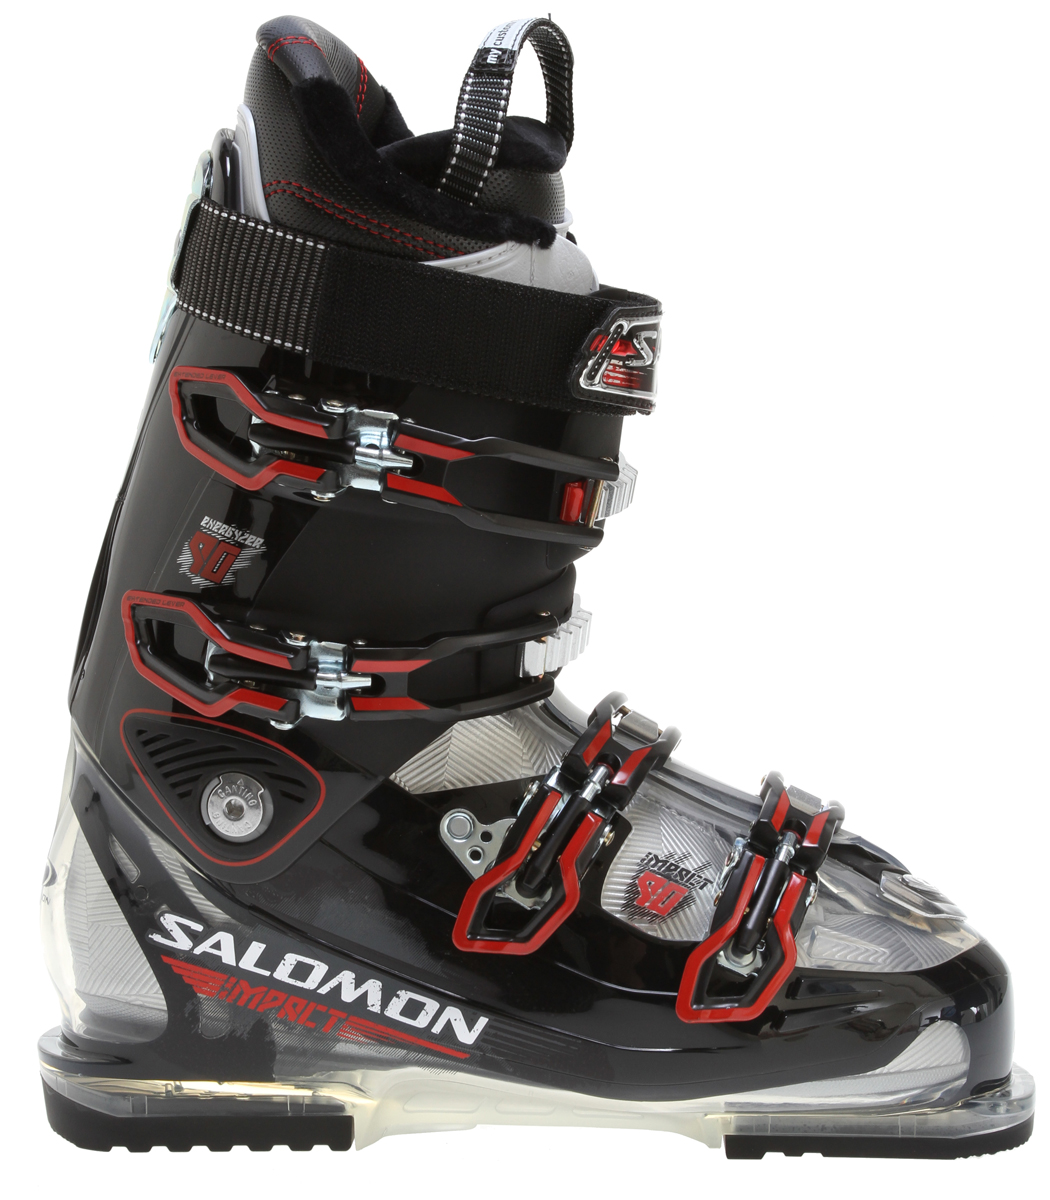 Ski Performance all-mountain boot for skiers who demand maximum performance but refuse to sacrifice comfort. Improved with new foot positioning in the bootKey Features of the Salomon Impact 90 Ski Boots: Bi material PU lower shell Bi-material PU upper cuff World cup advanced shell technology 1st tooth catch Single canting Heel and toe removable din pads My Custom Fit Comfort 4 micro titanium buckles Flex Index: 90 Last: 100 - $349.95